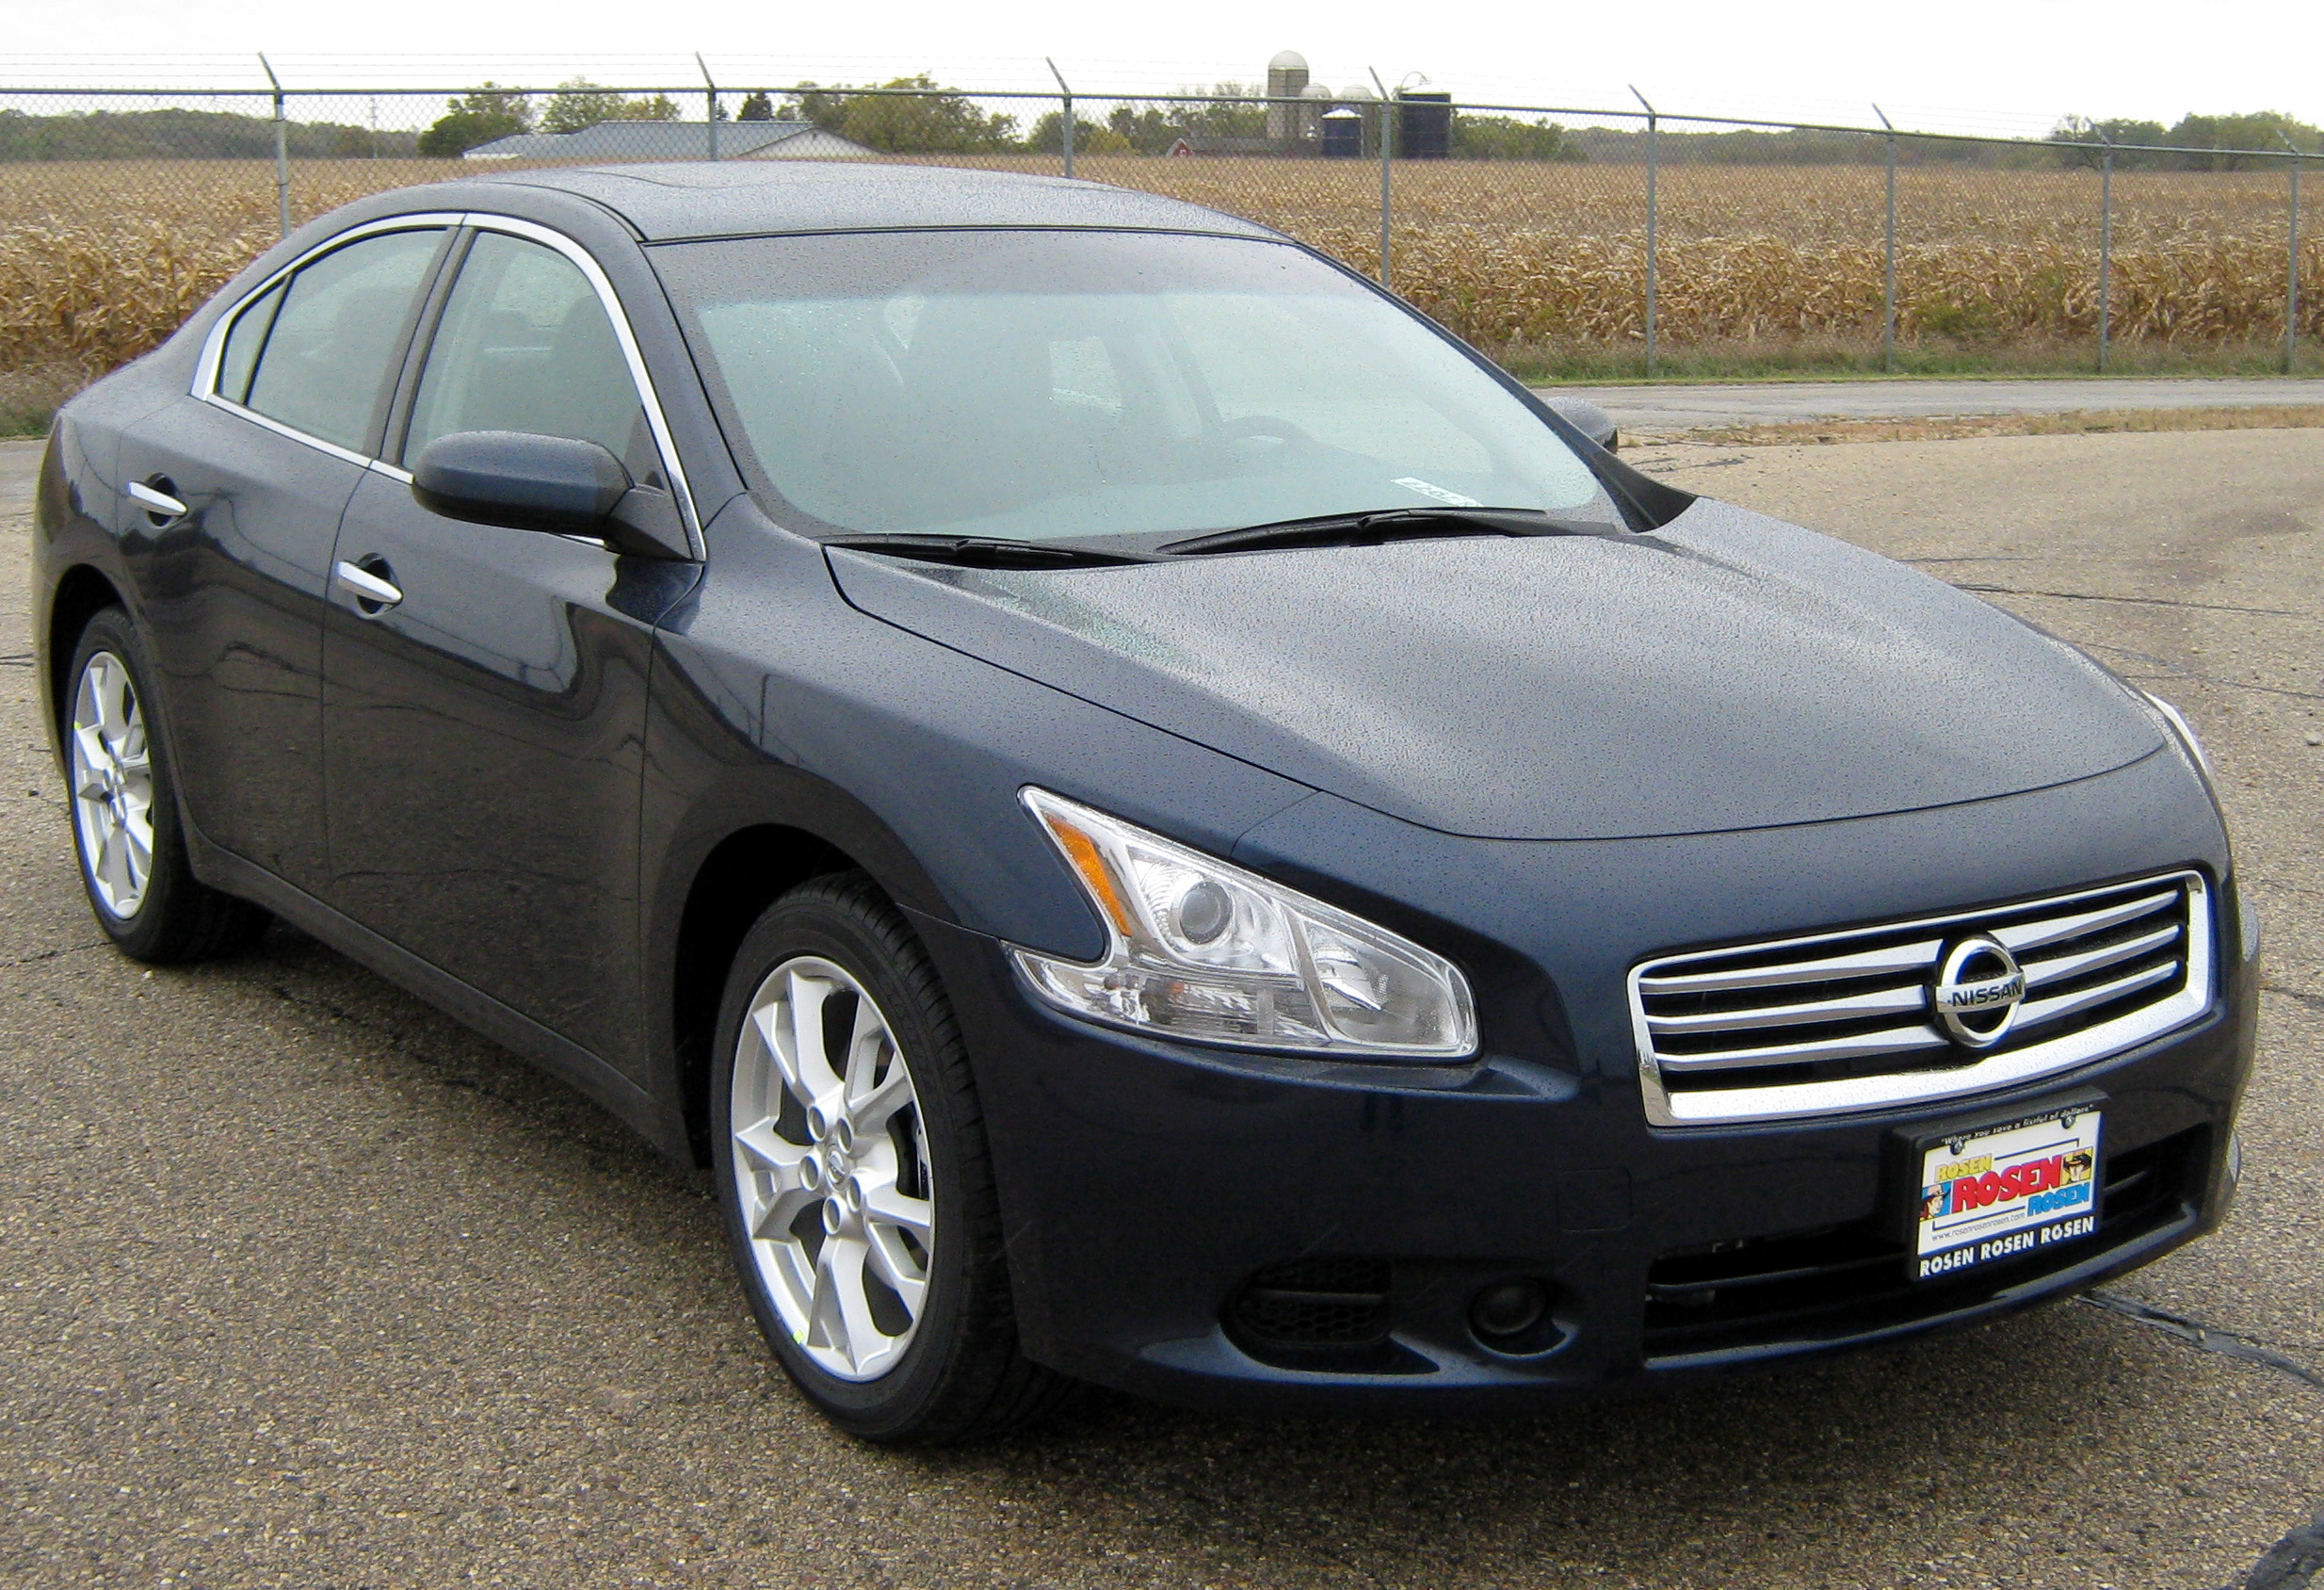 2012 nissan maxima information and photos zombiedrive. Black Bedroom Furniture Sets. Home Design Ideas